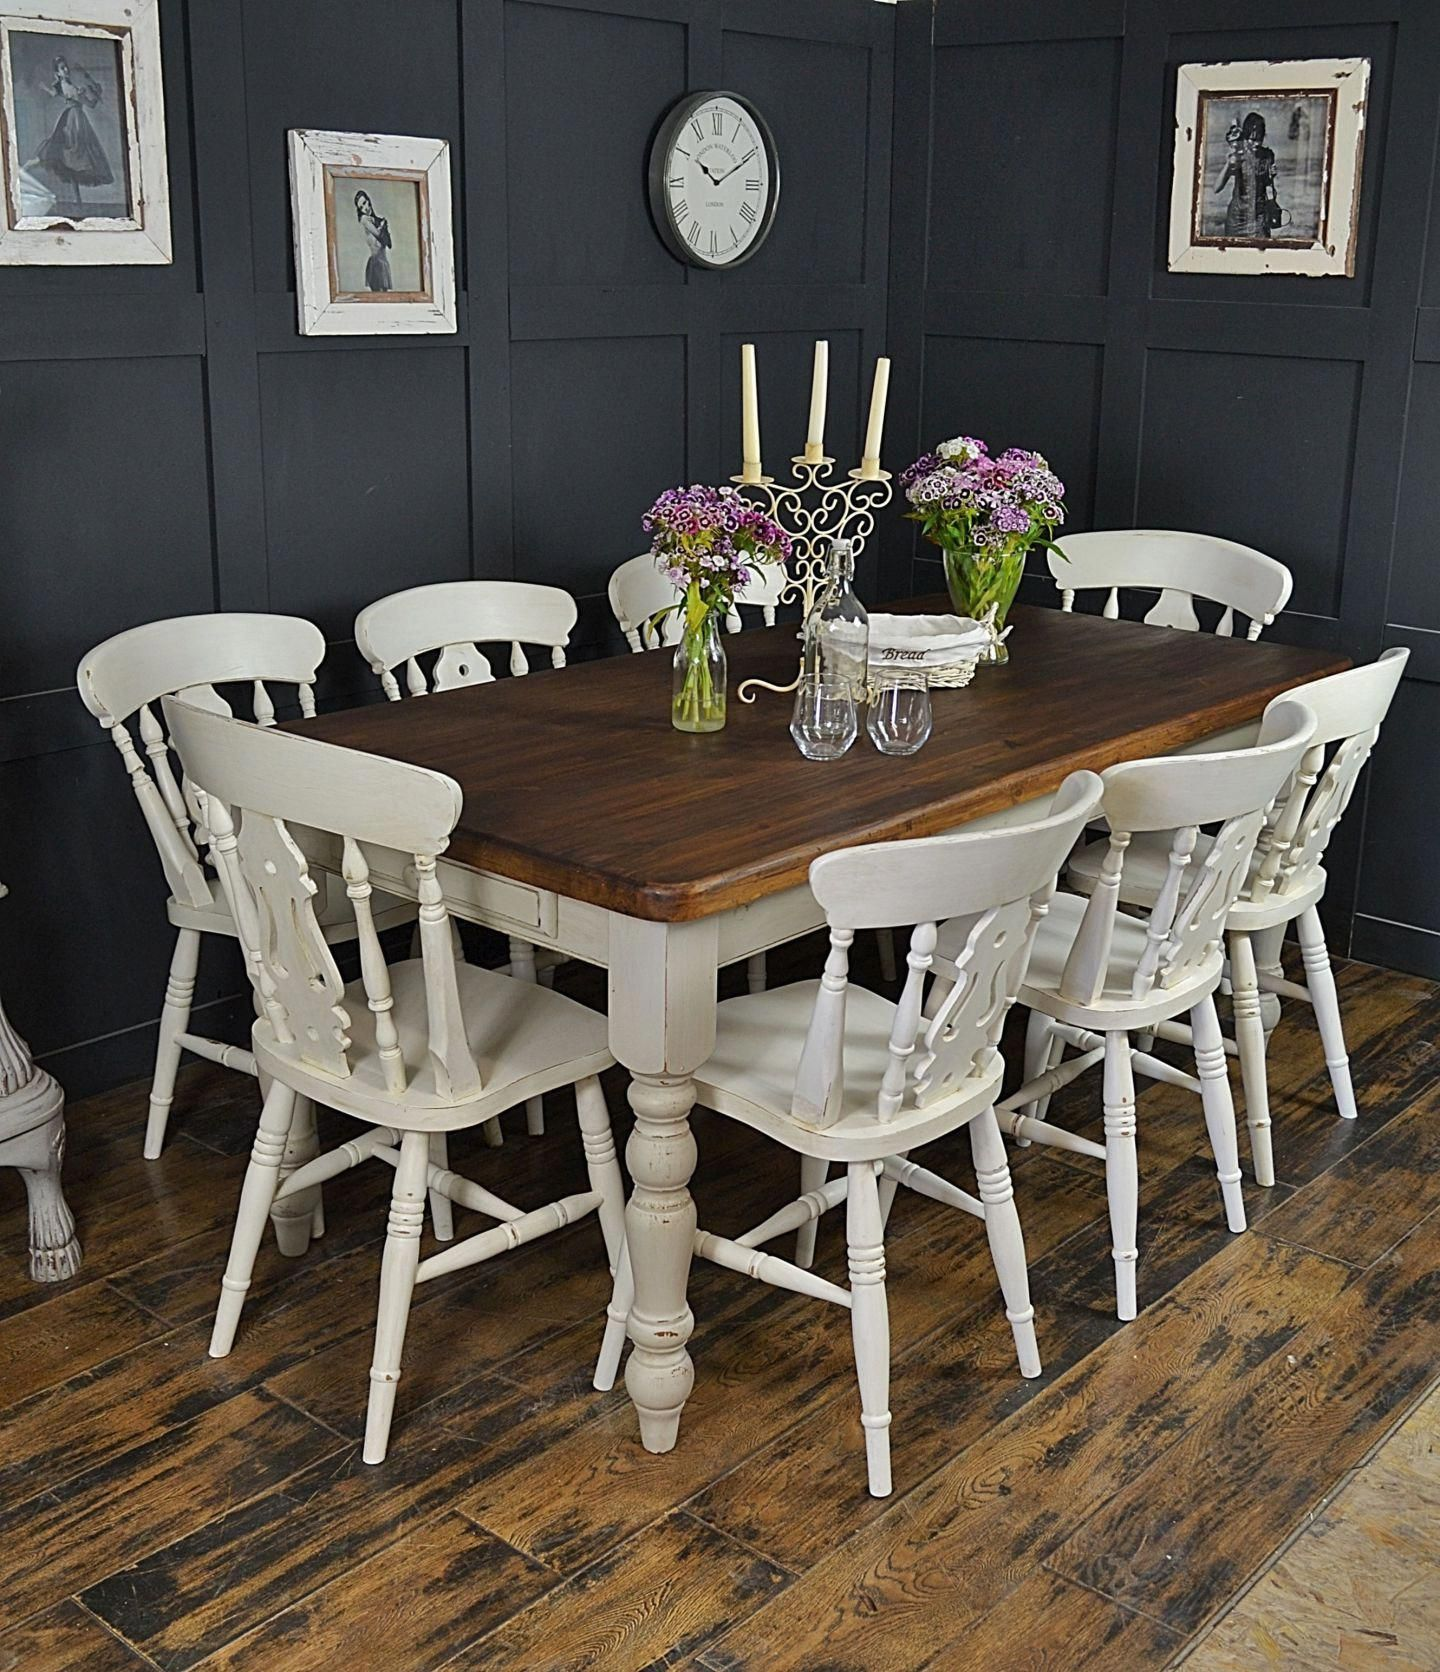 25 Awesome Traditional Dining Design Ideas: Amazing Traditional Kitchen Decorating Ideas 30